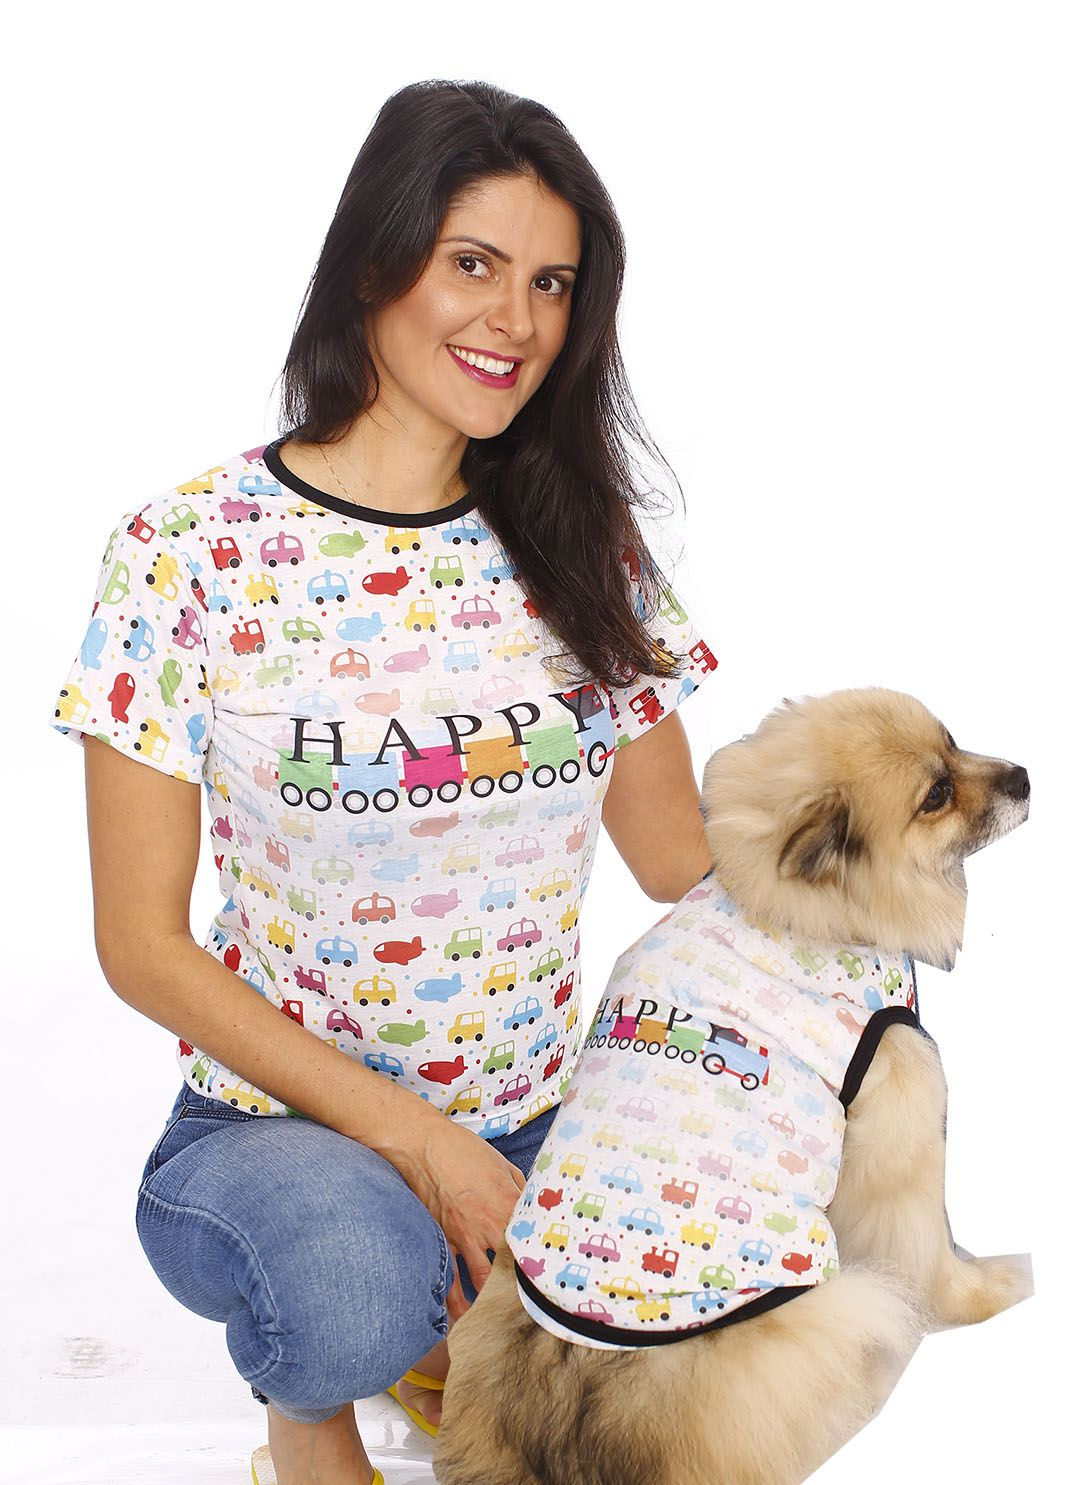 Tal Mãe & Tal Pet – Happy  - Shoppinho Animal